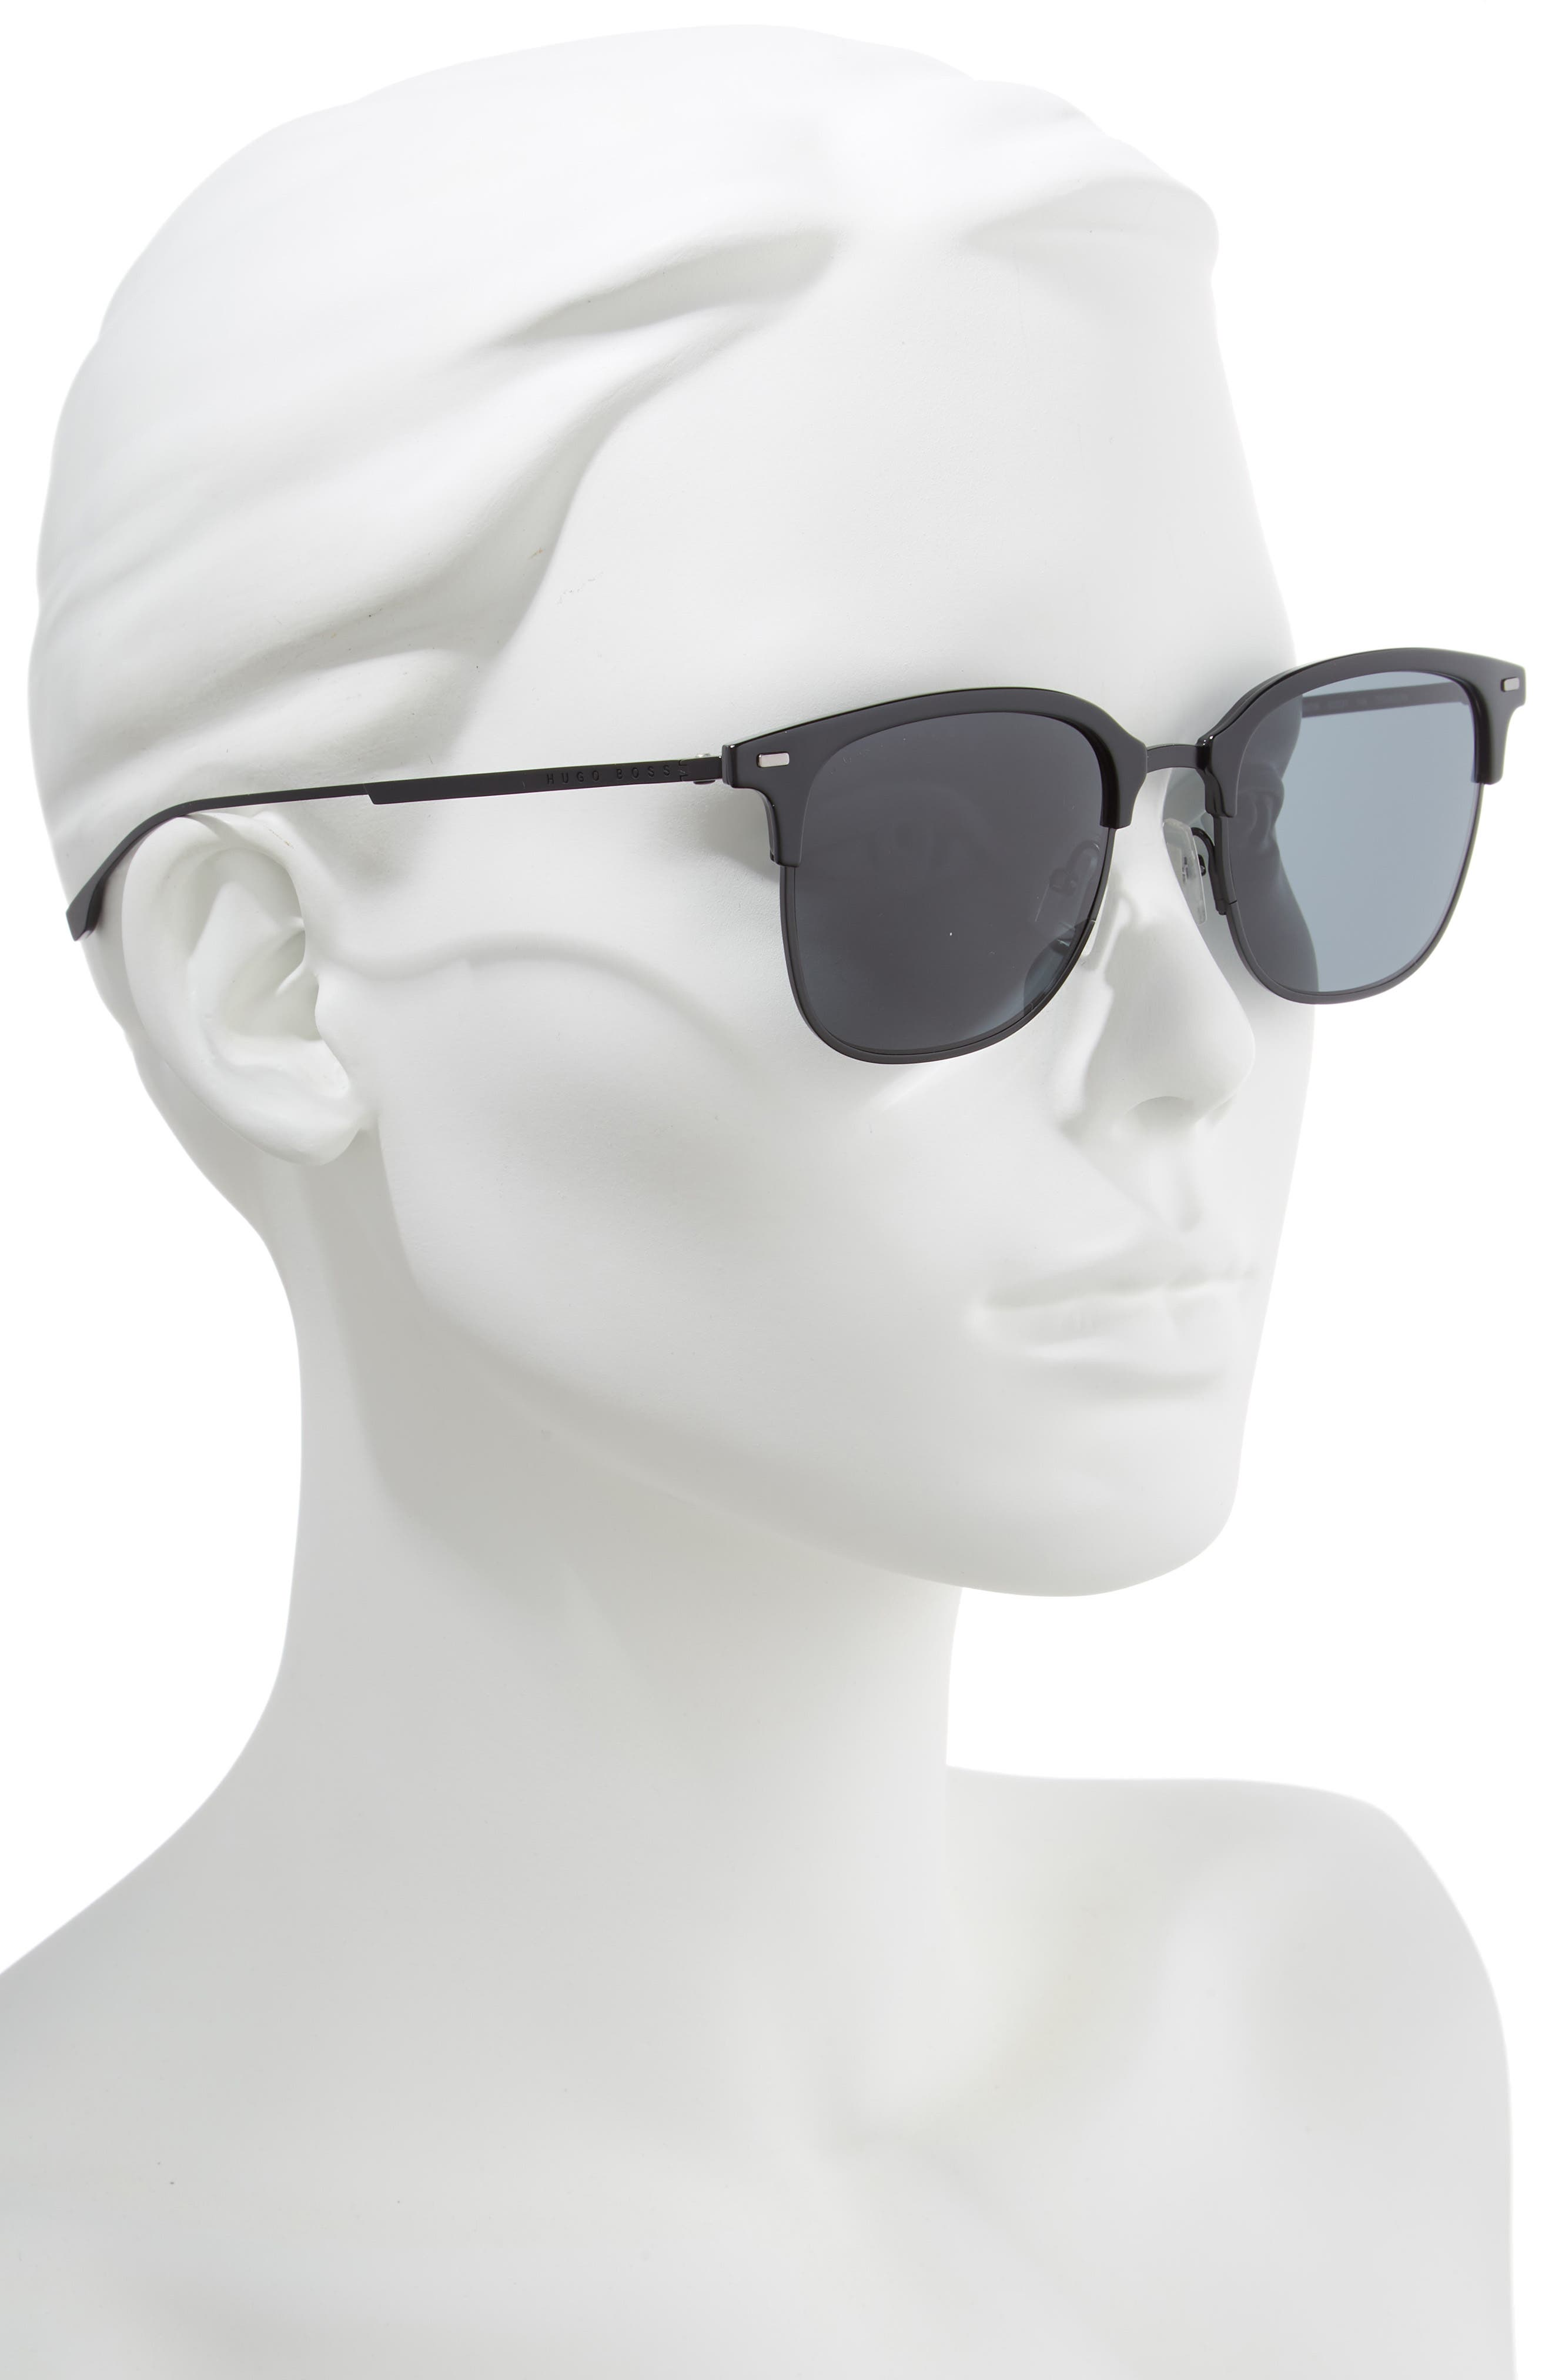 53mm Special Fit Semi Rimless Sunglasses,                             Alternate thumbnail 2, color,                             BLACK